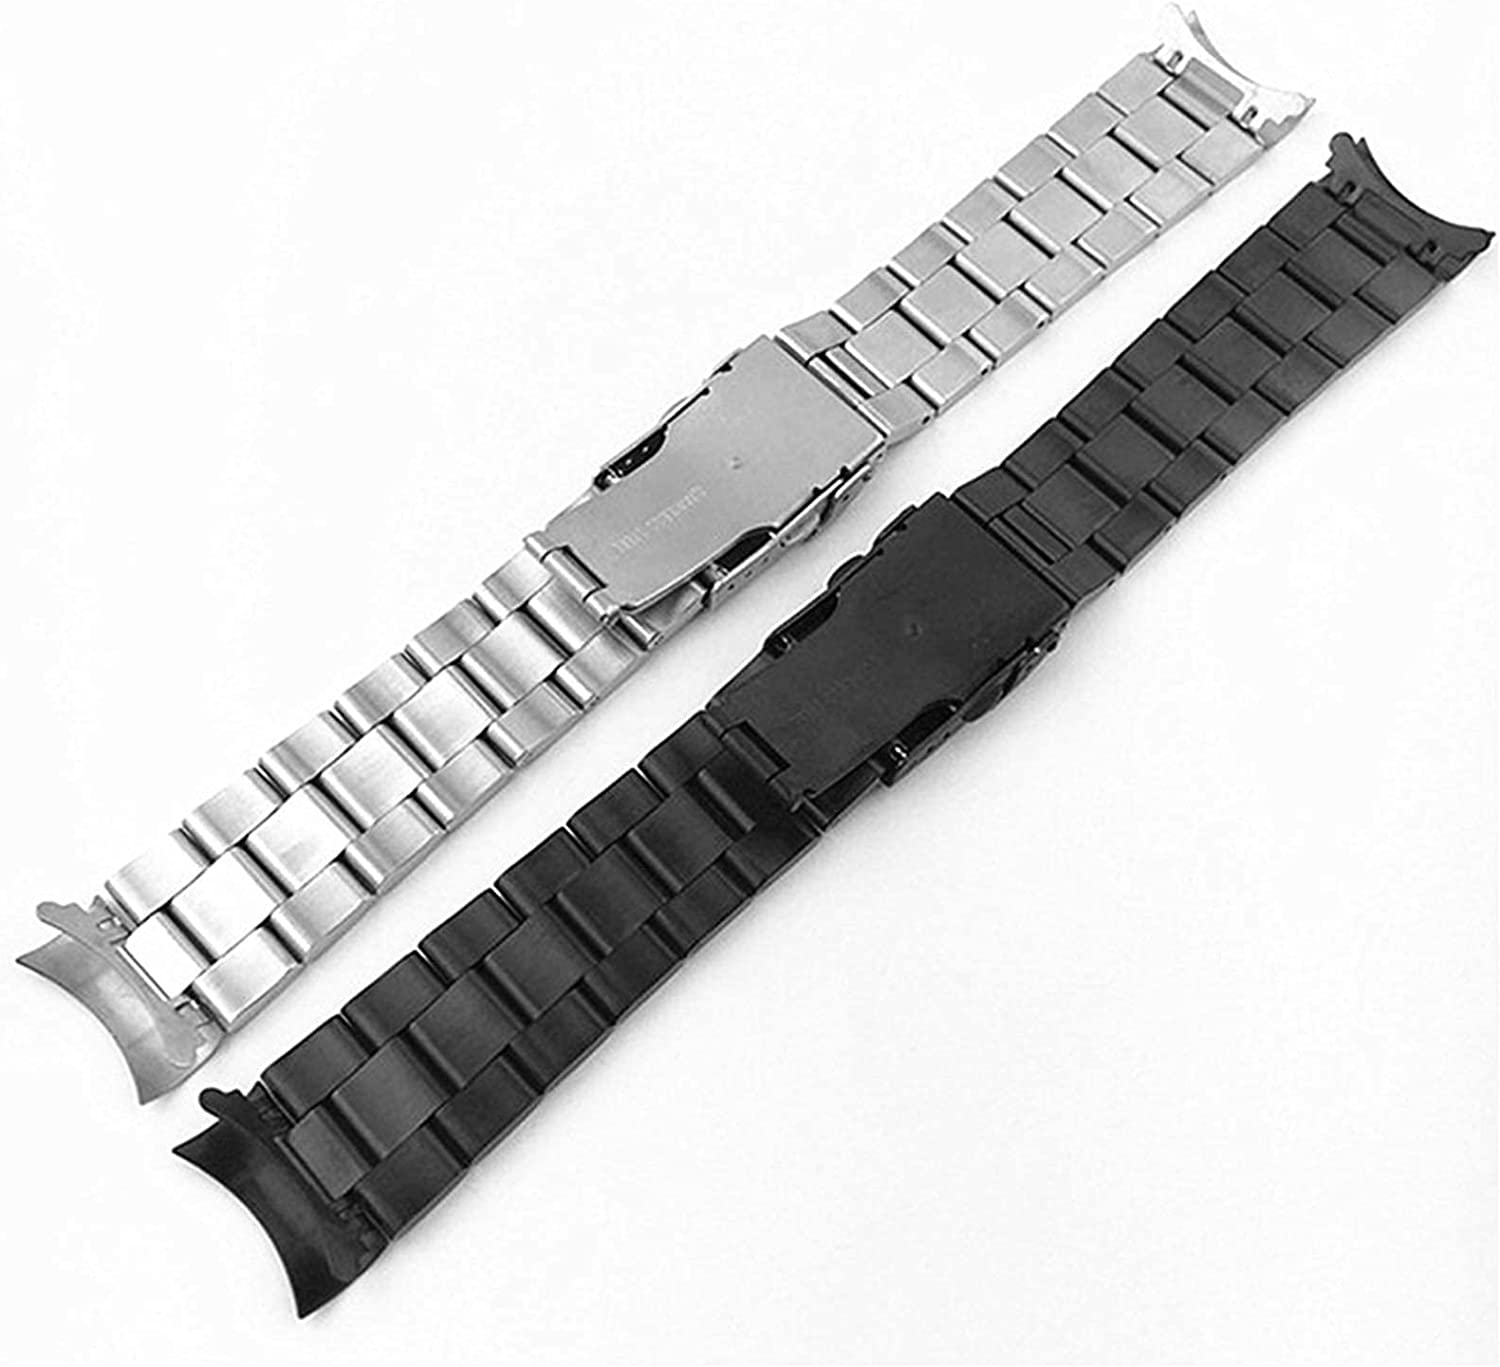 ZJSXIA Watch Strap 20mm 22mm Watchband Wome Men Steel Stainless New Orleans Mall sold out